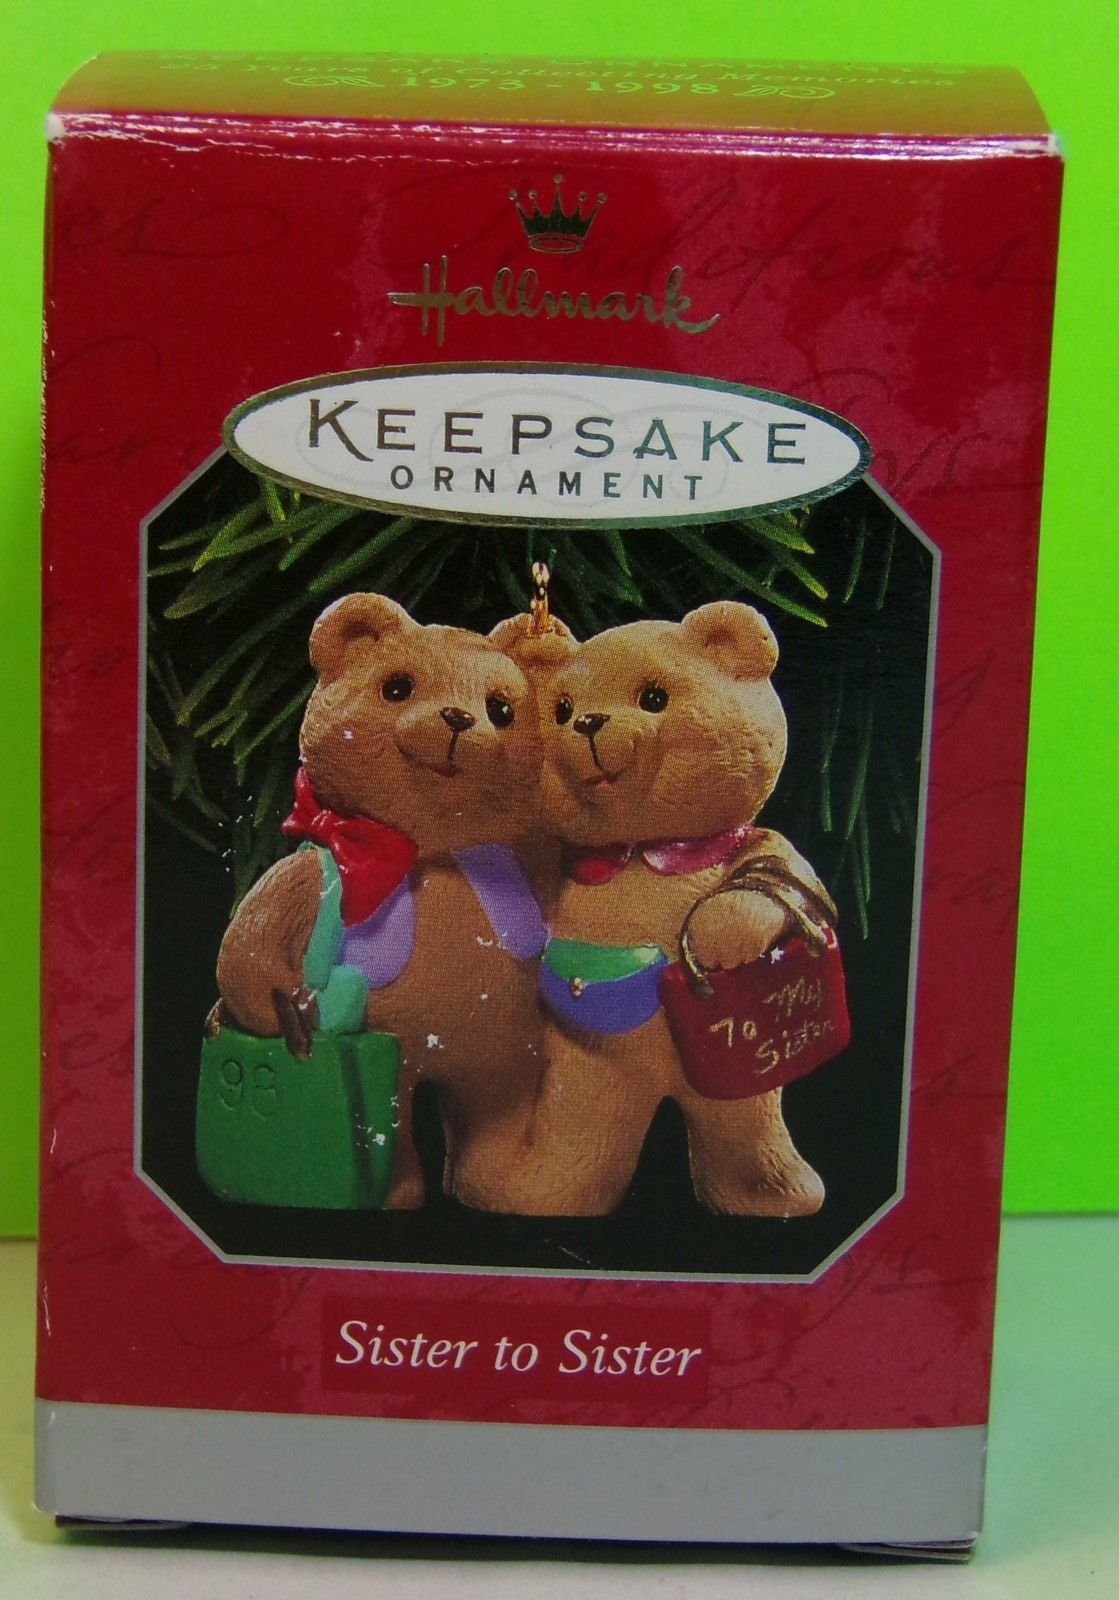 Primary image for Hallmark Keepsake Ornament 1998 SISTER TO SISTER By Sharon Pike Collectible